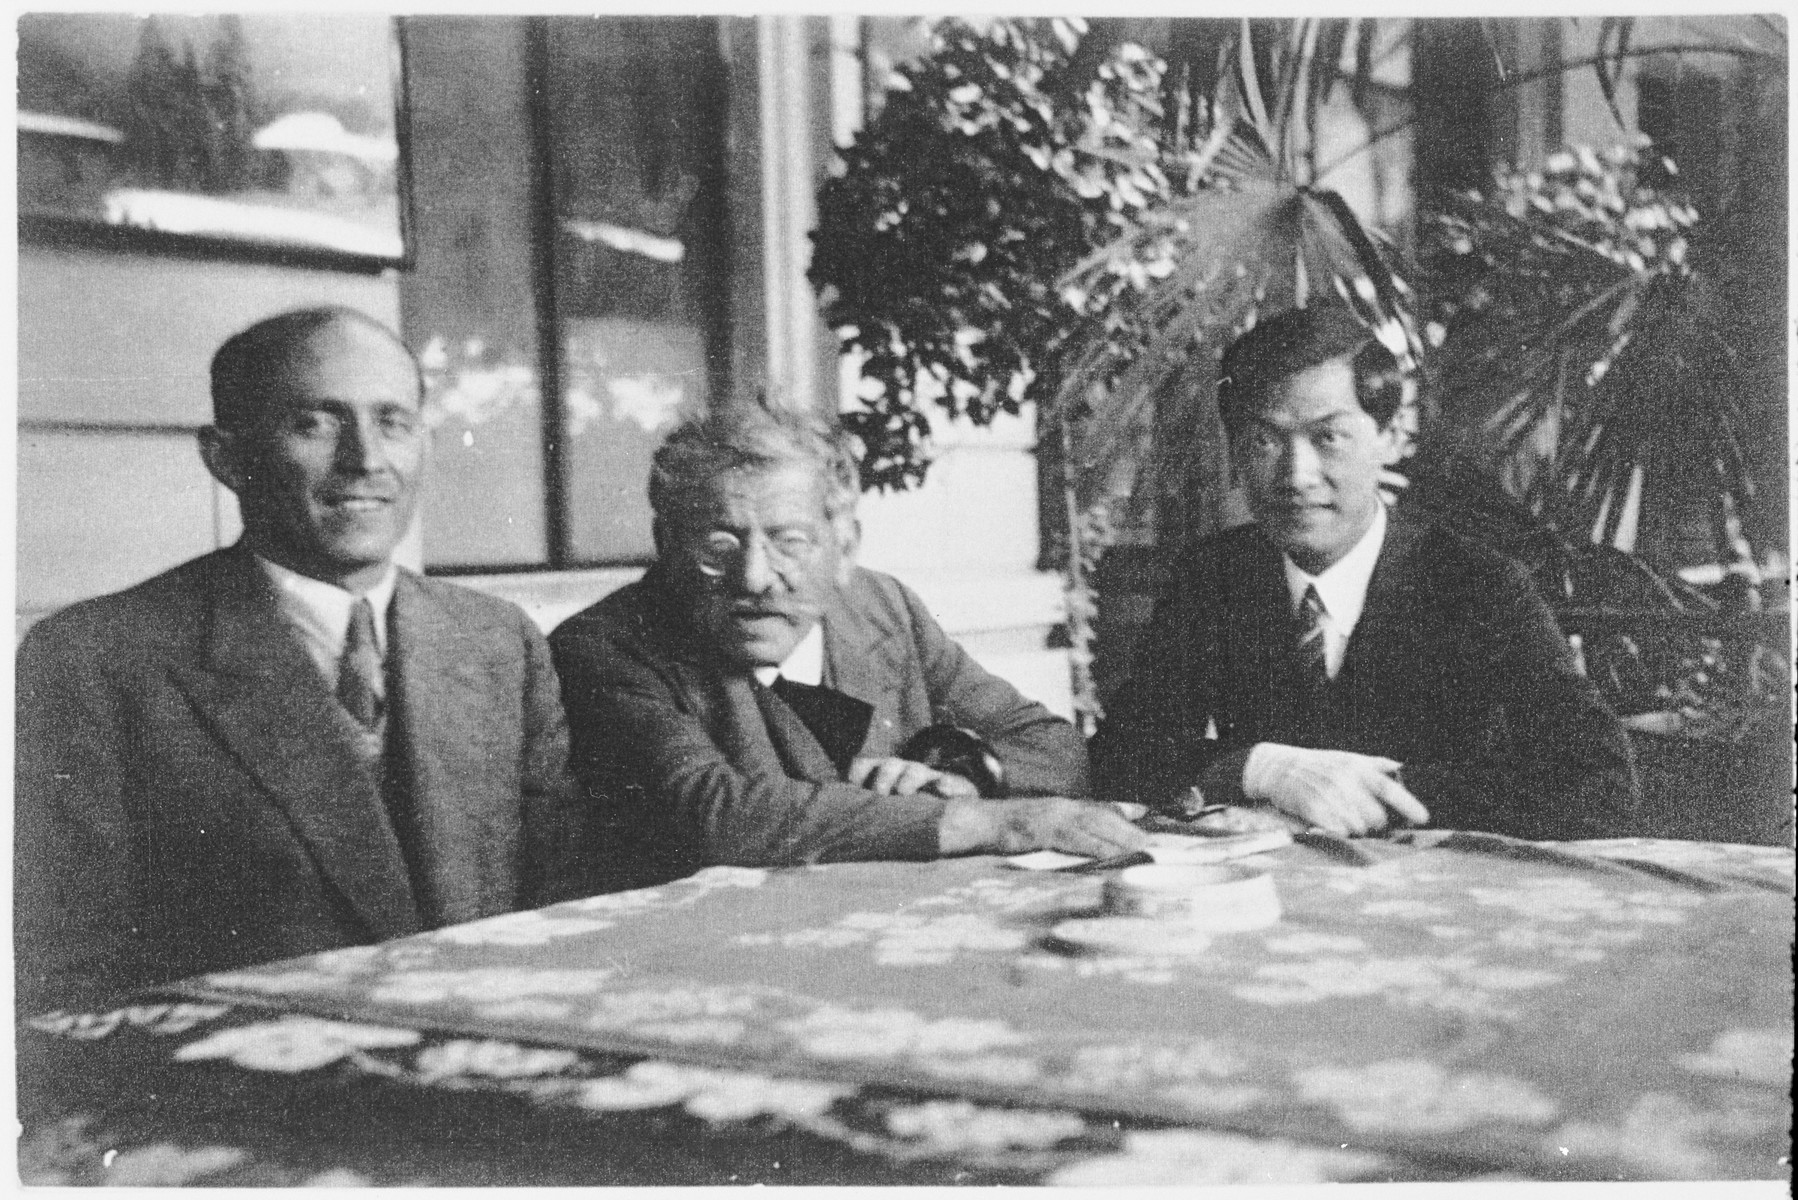 Sexologist and sex reformer Magnus Hirschfeld (center) with his co-worker Bernhard Schapiro (1885-1966) and his Chinese (in exile) friend and pupil Tao Lee, sitting at a garden table, unknown place and date.  (Archiv für Sexualwissenschaft, E. Haeberle, Berlin)